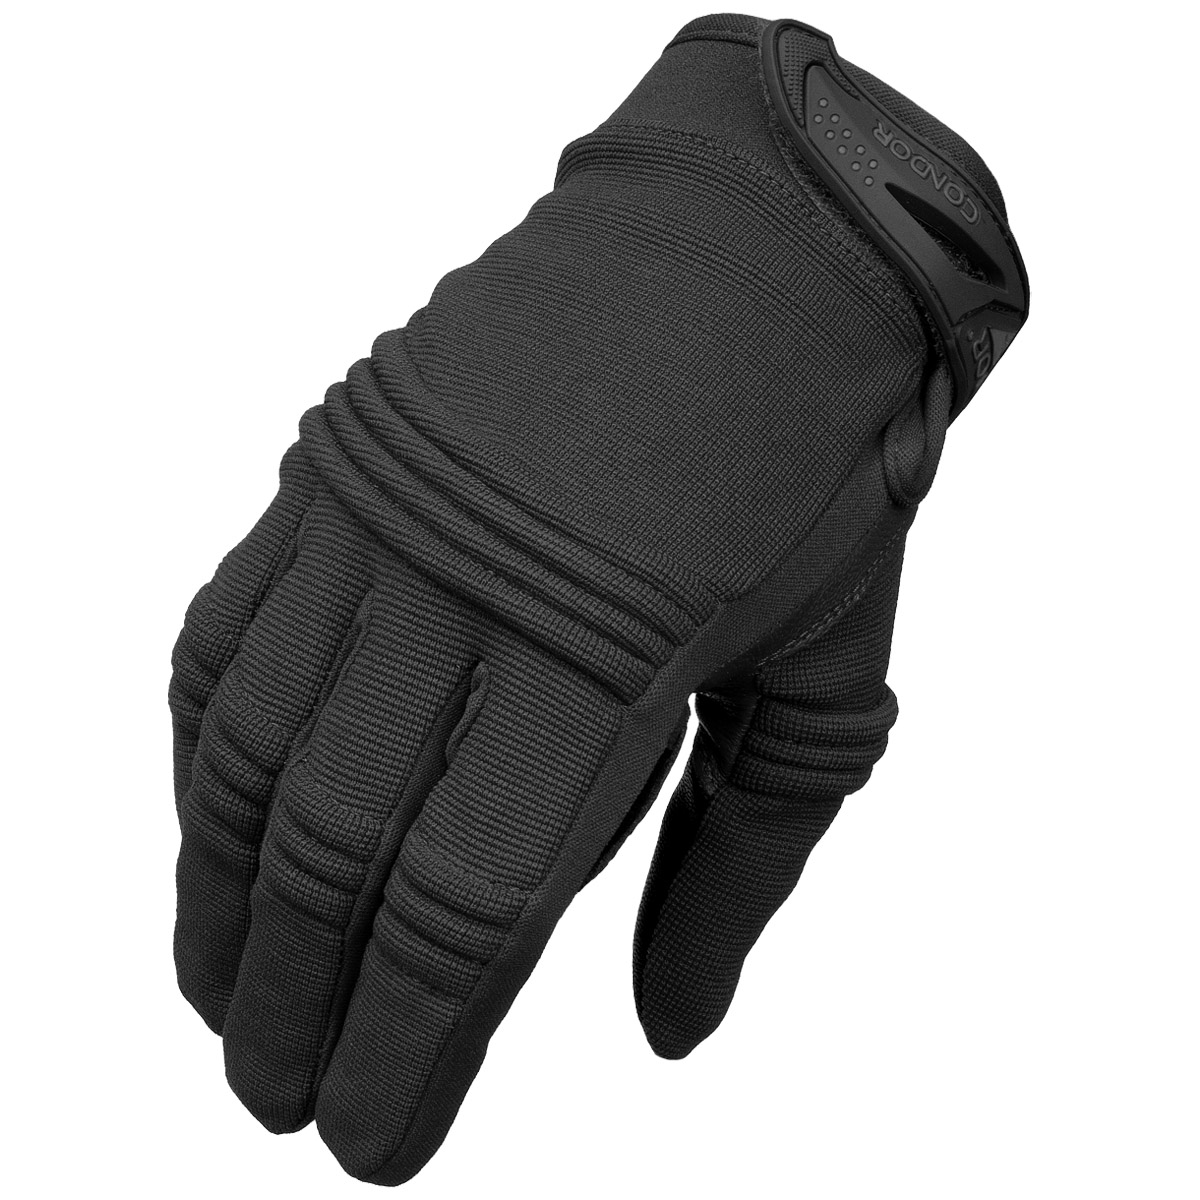 Mens gloves isotoner - Condor Tactician Tactile Combat Mens Touchscreen Gloves Security